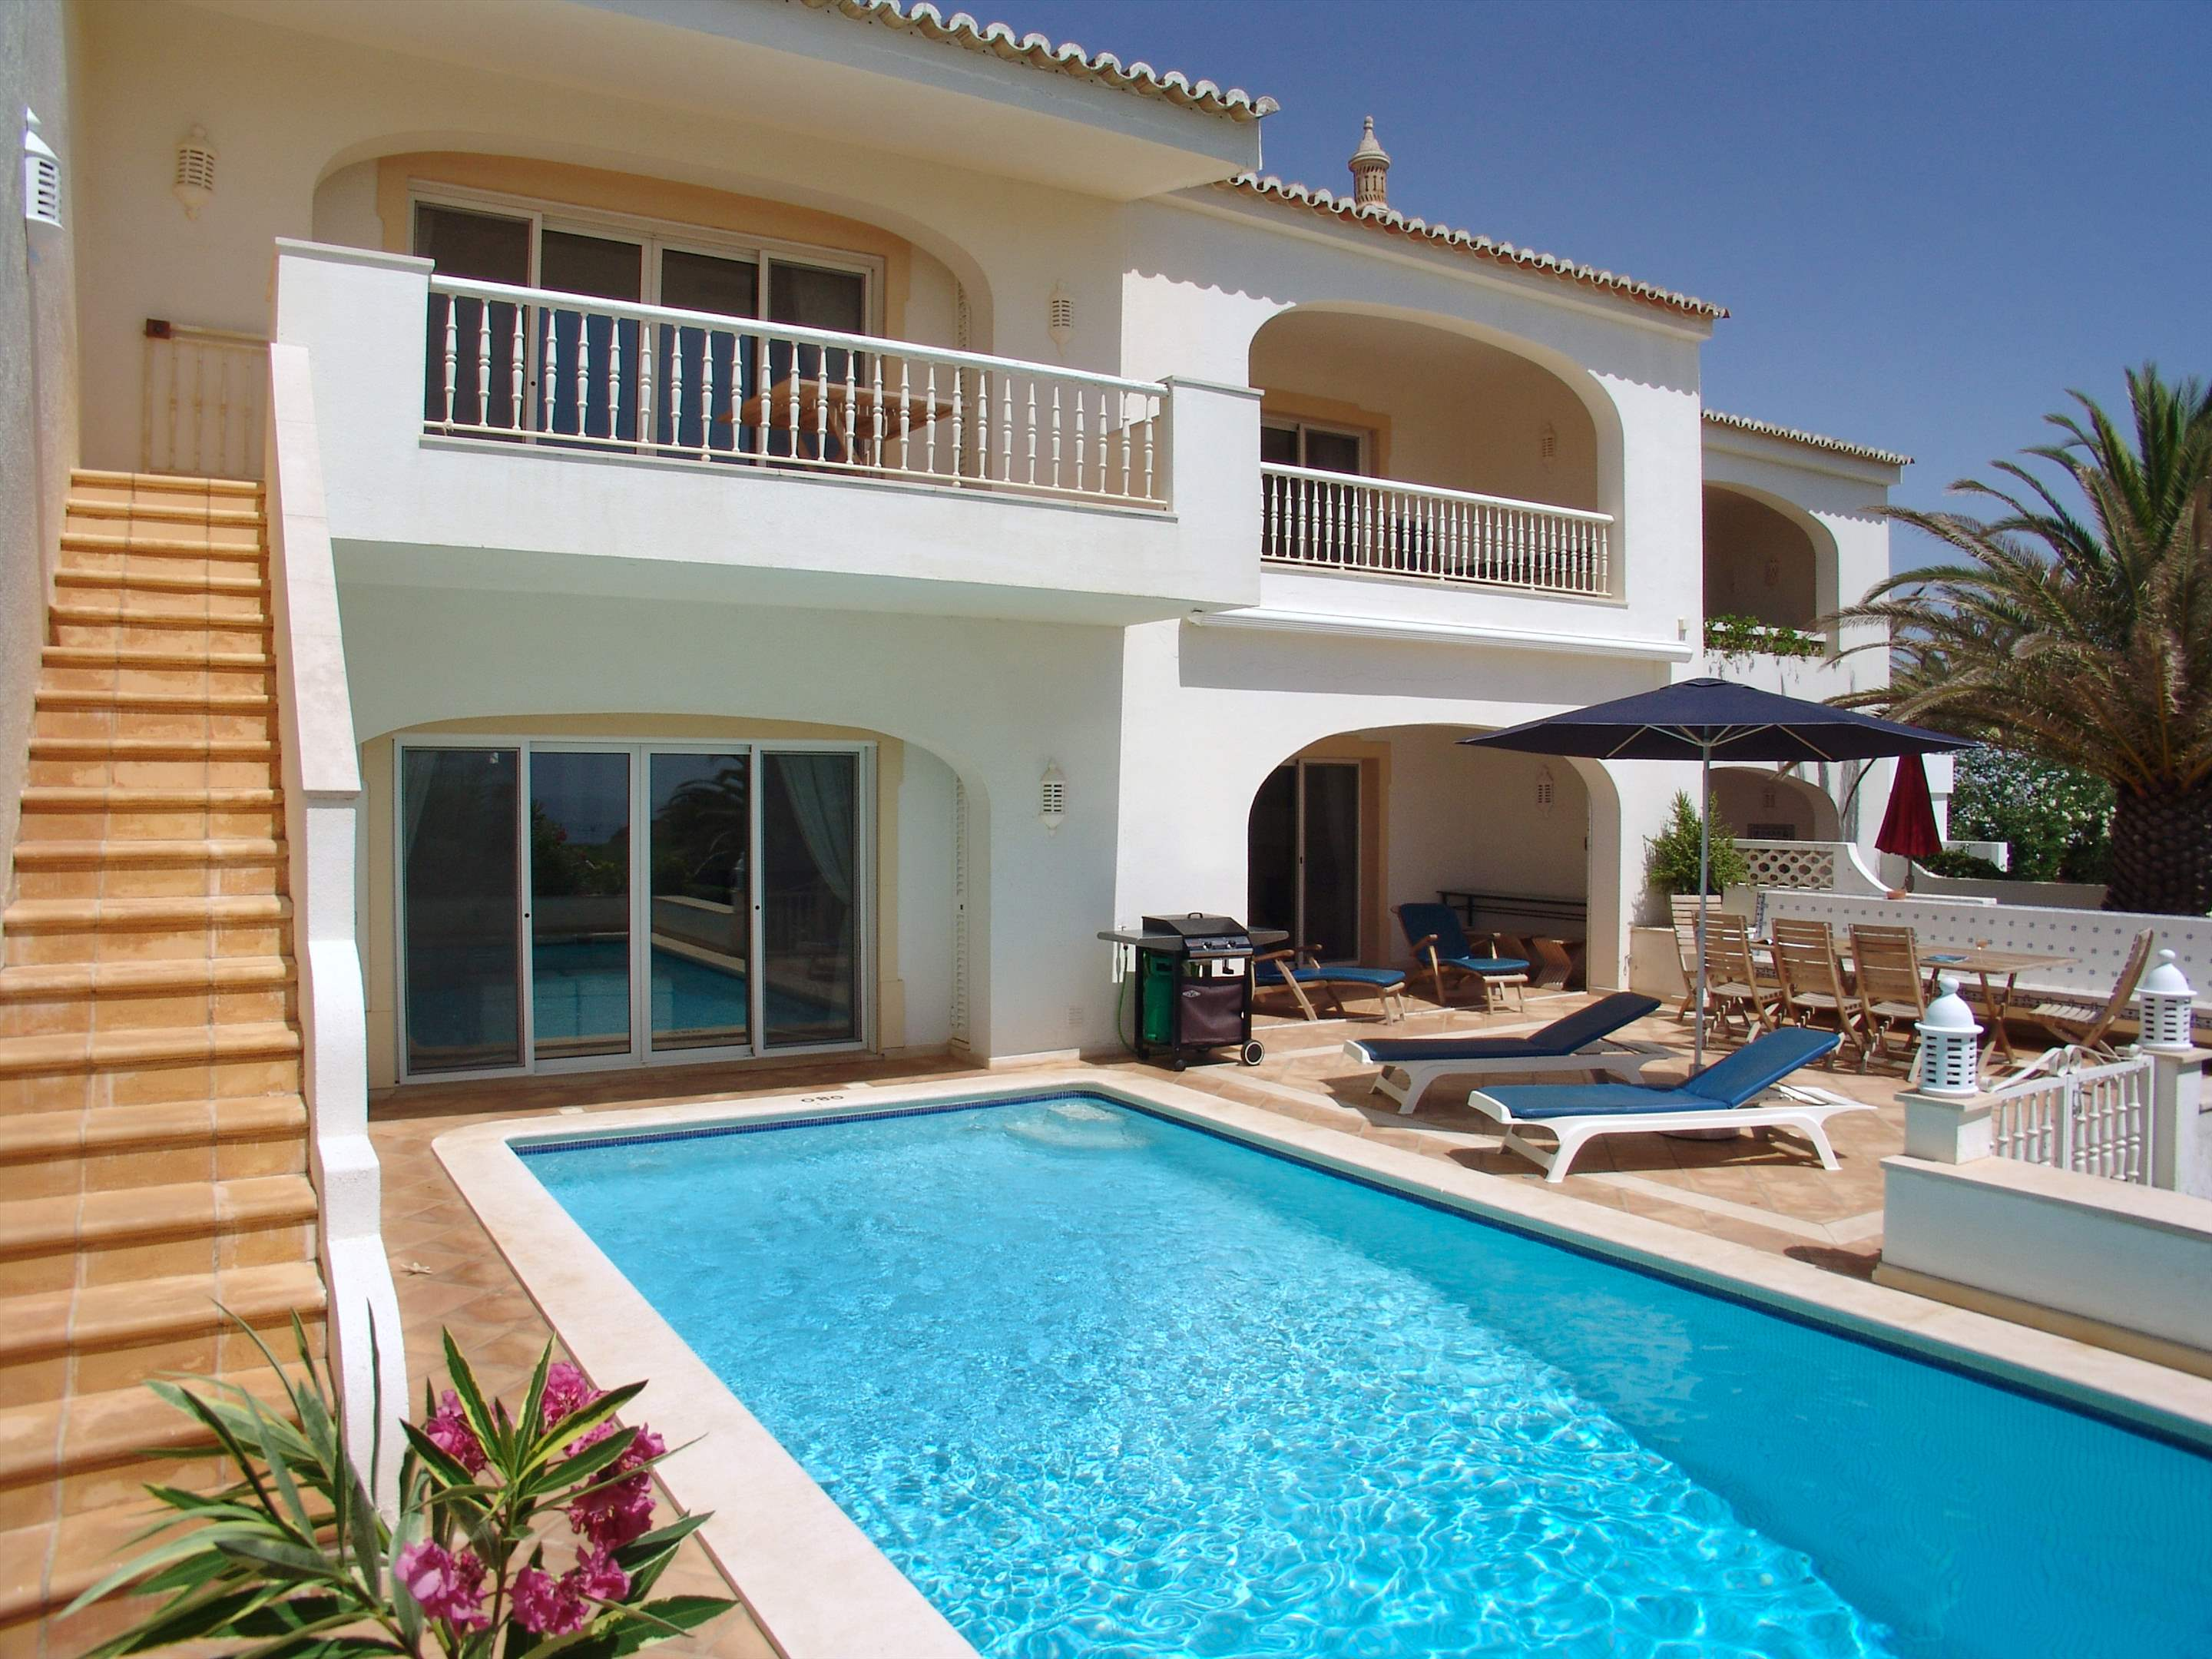 Villas Louisa, 5 bedroom, 5 bedroom villa in Vale do Lobo, Algarve